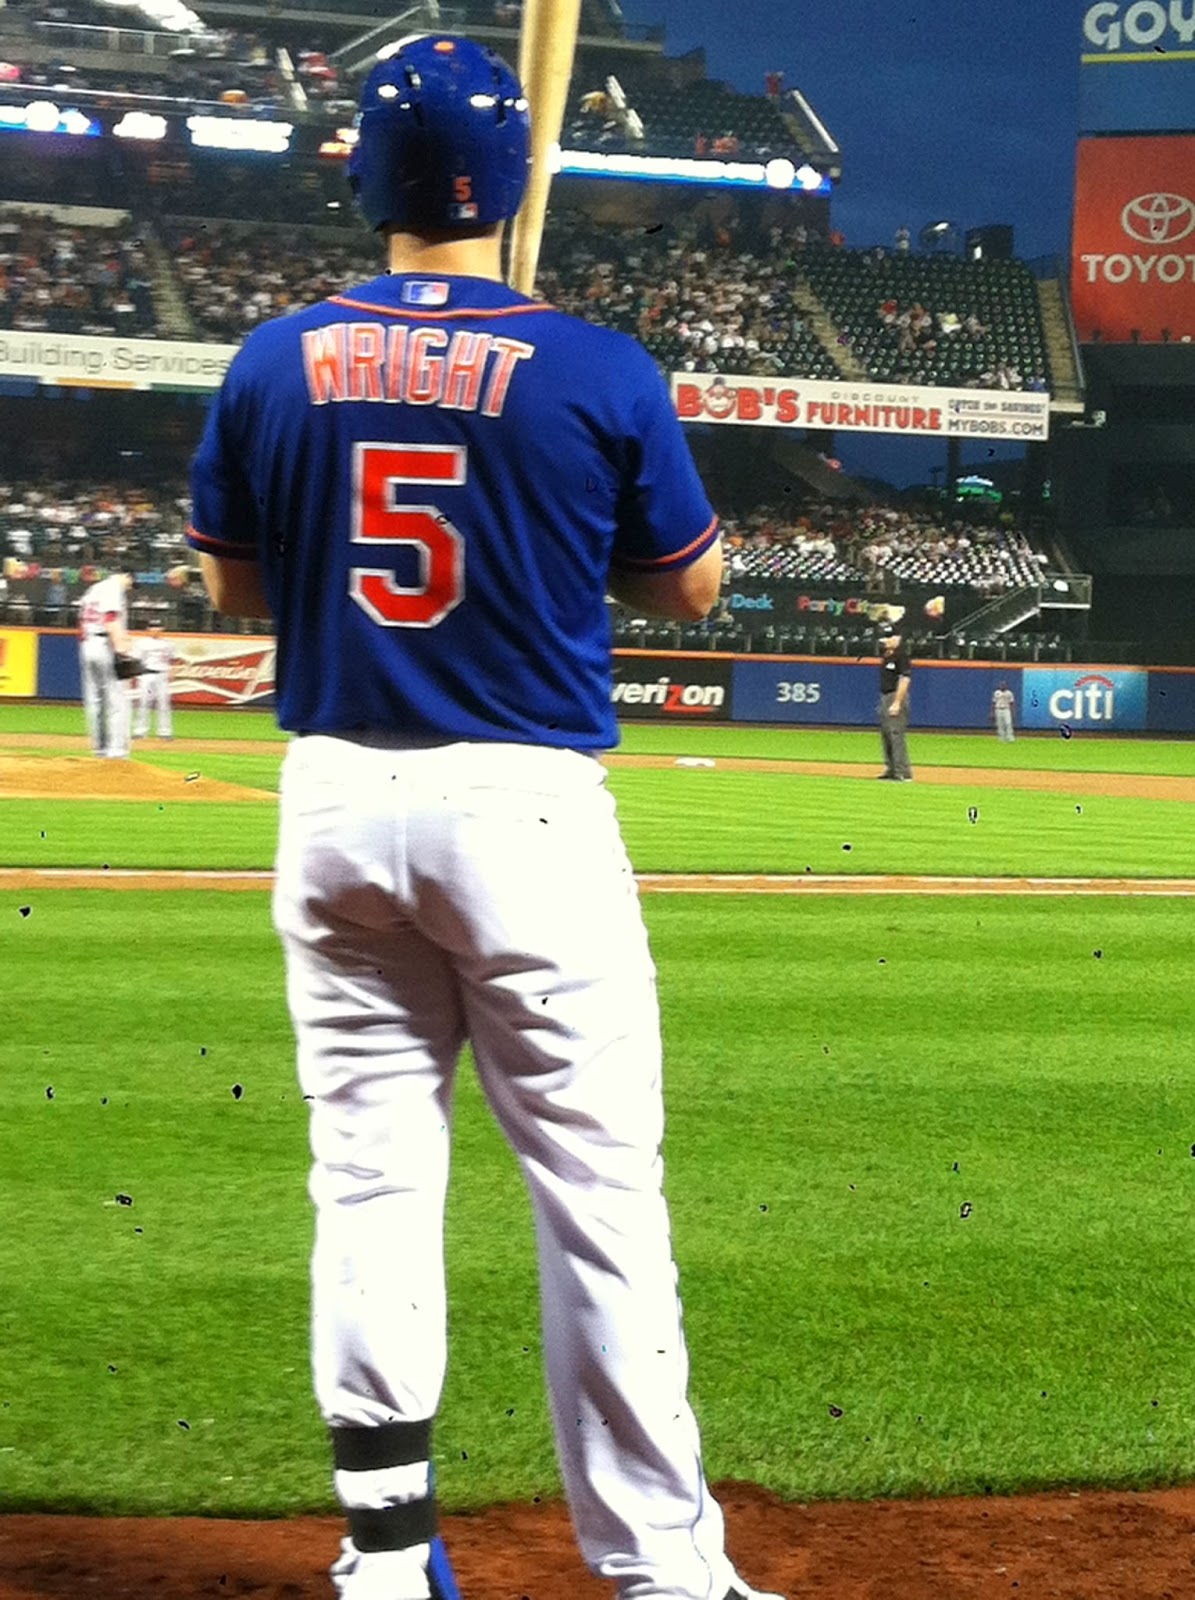 David Wright on deck first row seats picture